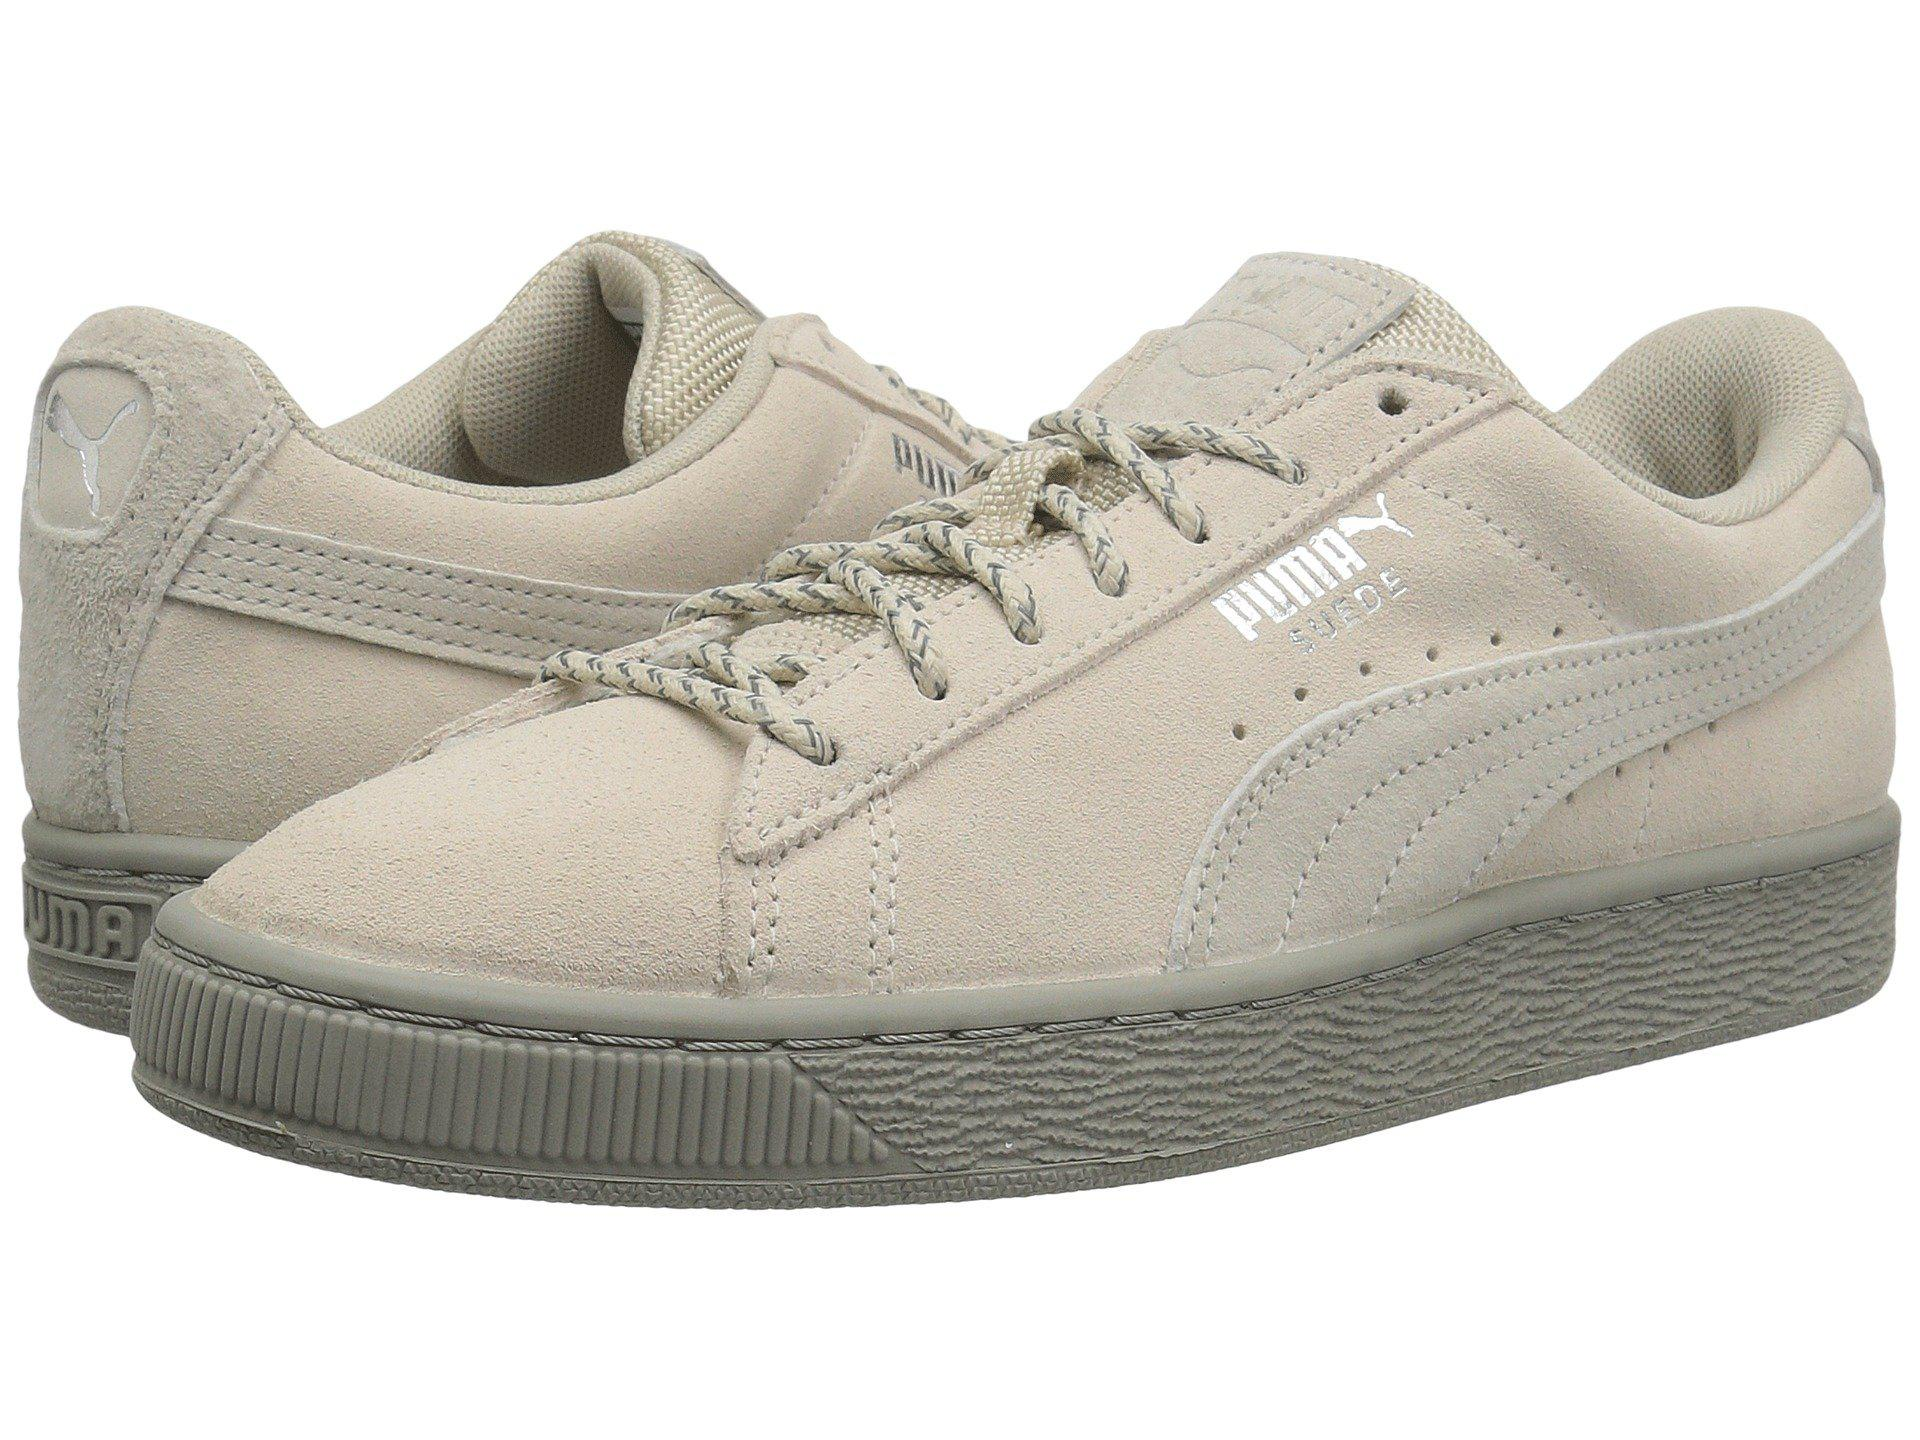 Lyst - PUMA Suede Classic Weatherproof in Gray for Men 5bb0826cd